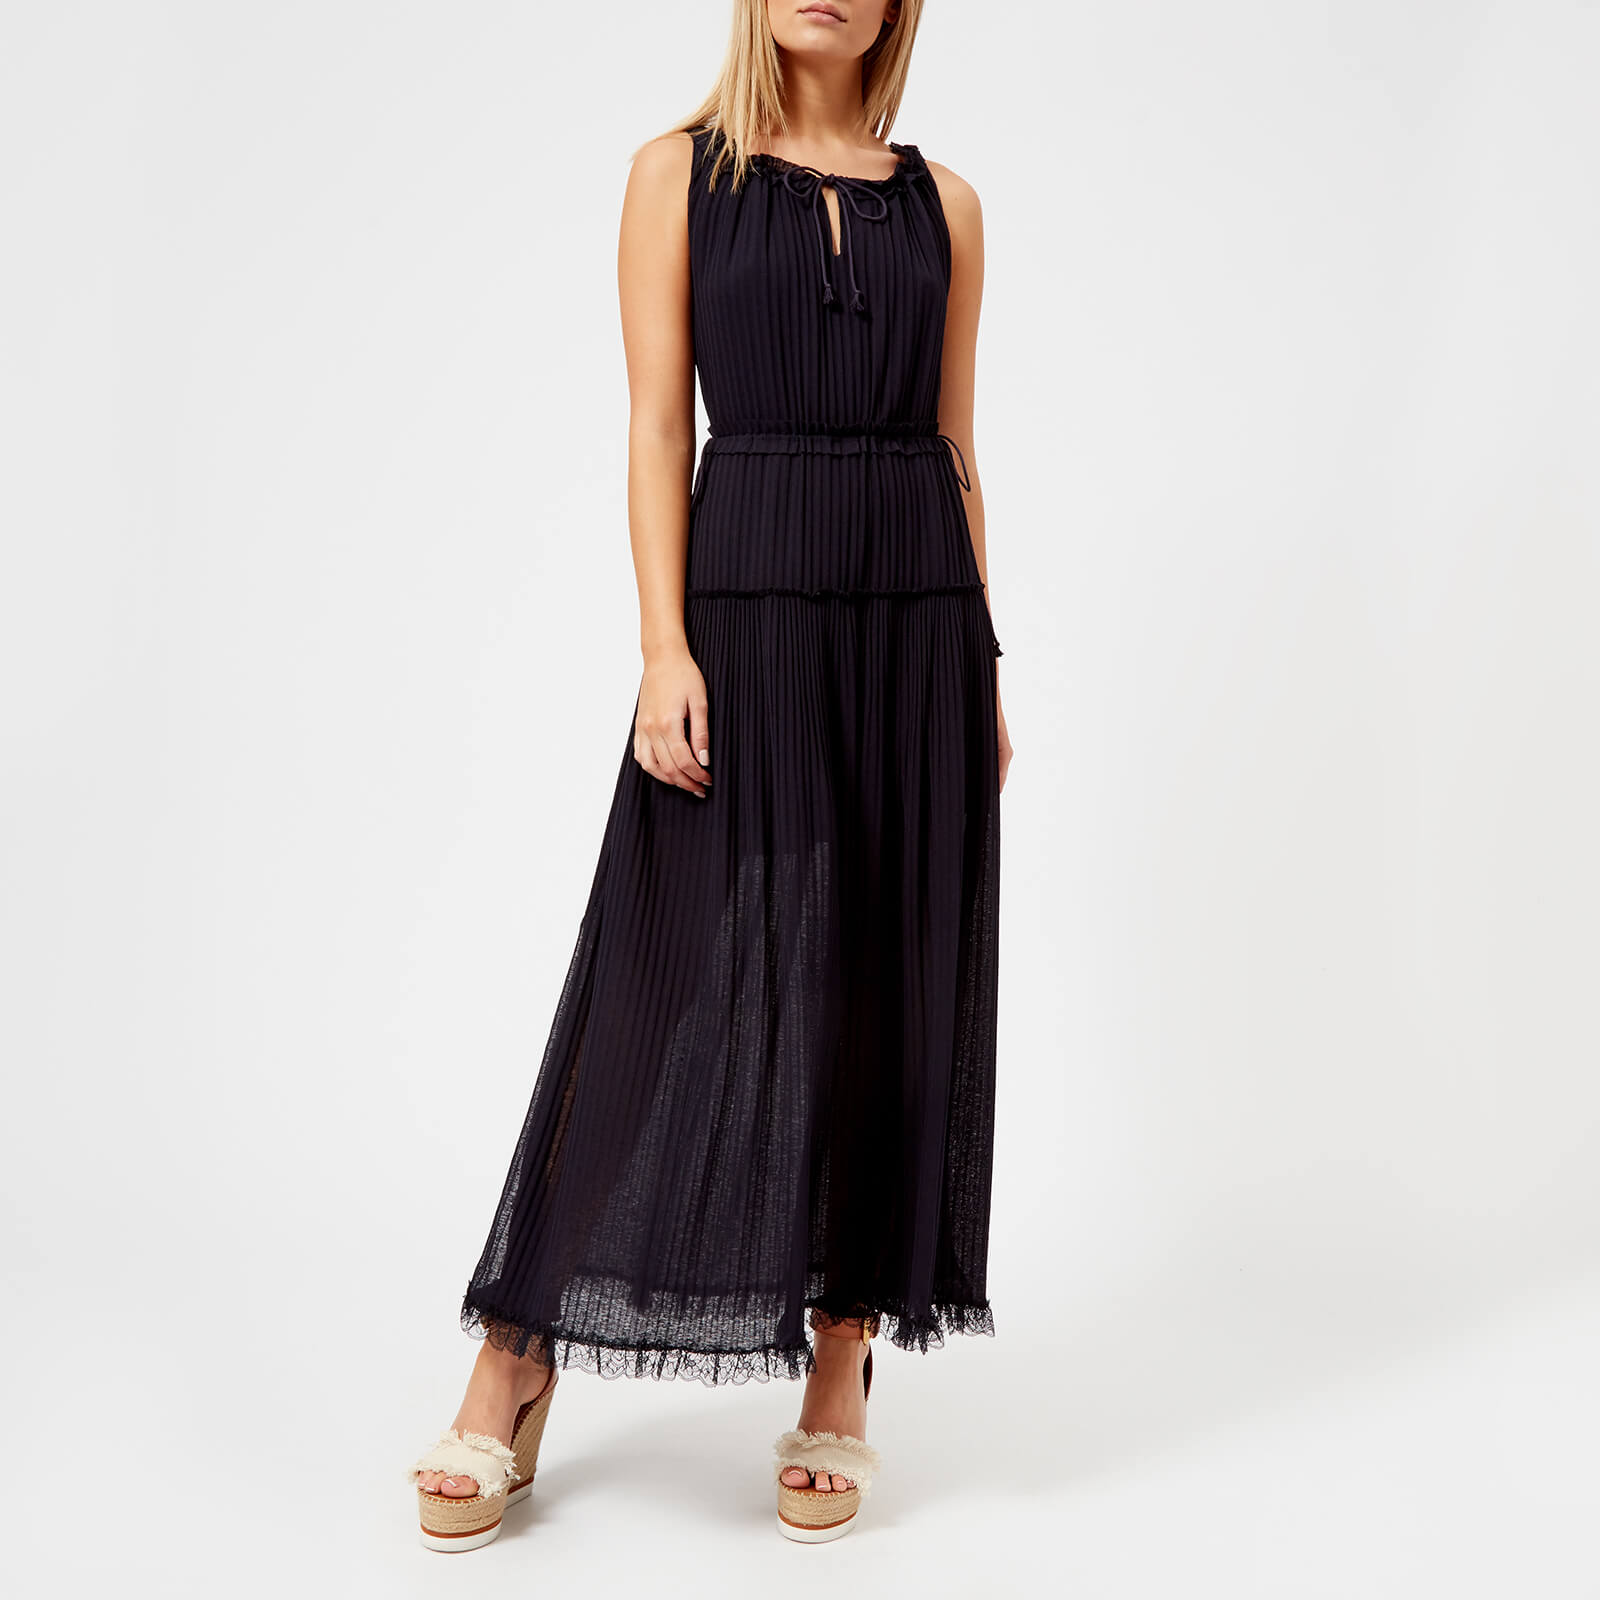 86e7660333 See By Chloé Women's Pleated Maxi Dress - Ink Navy